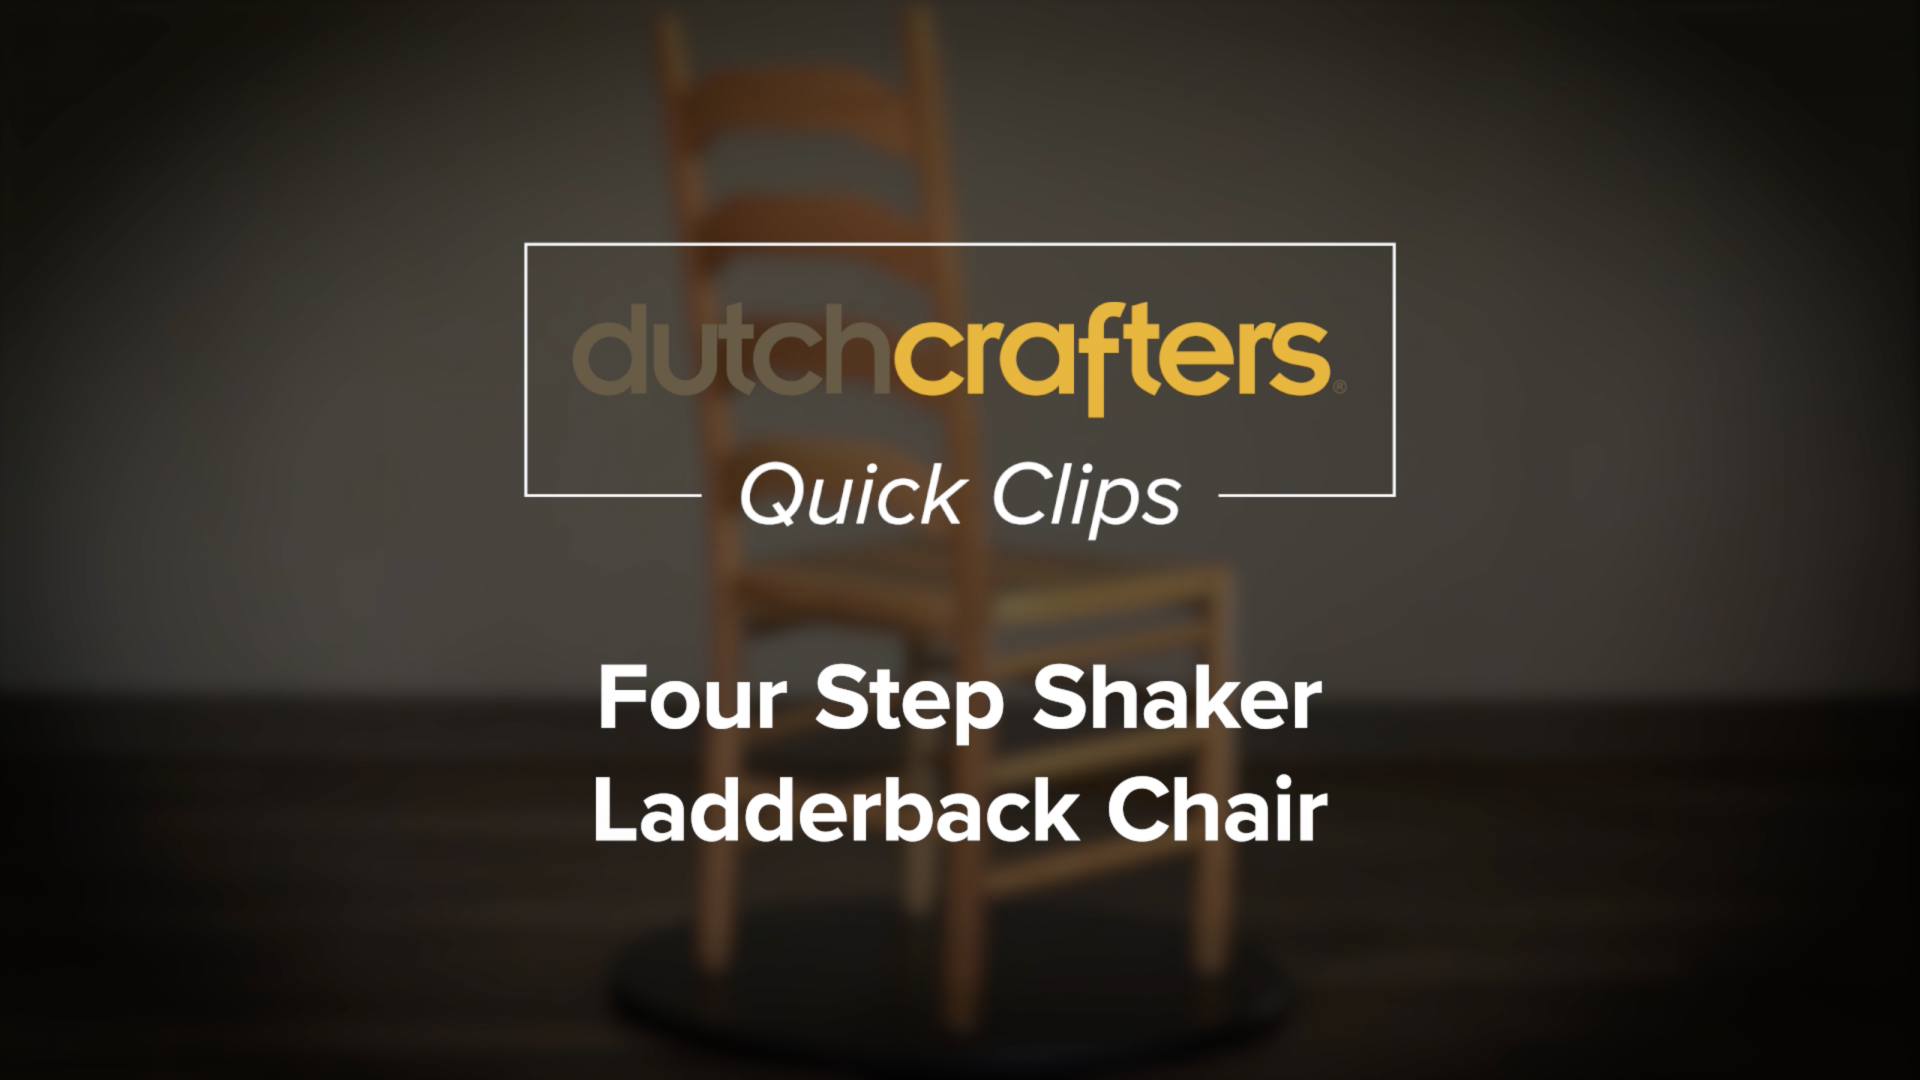 Four Step Shaker Ladderback Chair Thumbnail Image